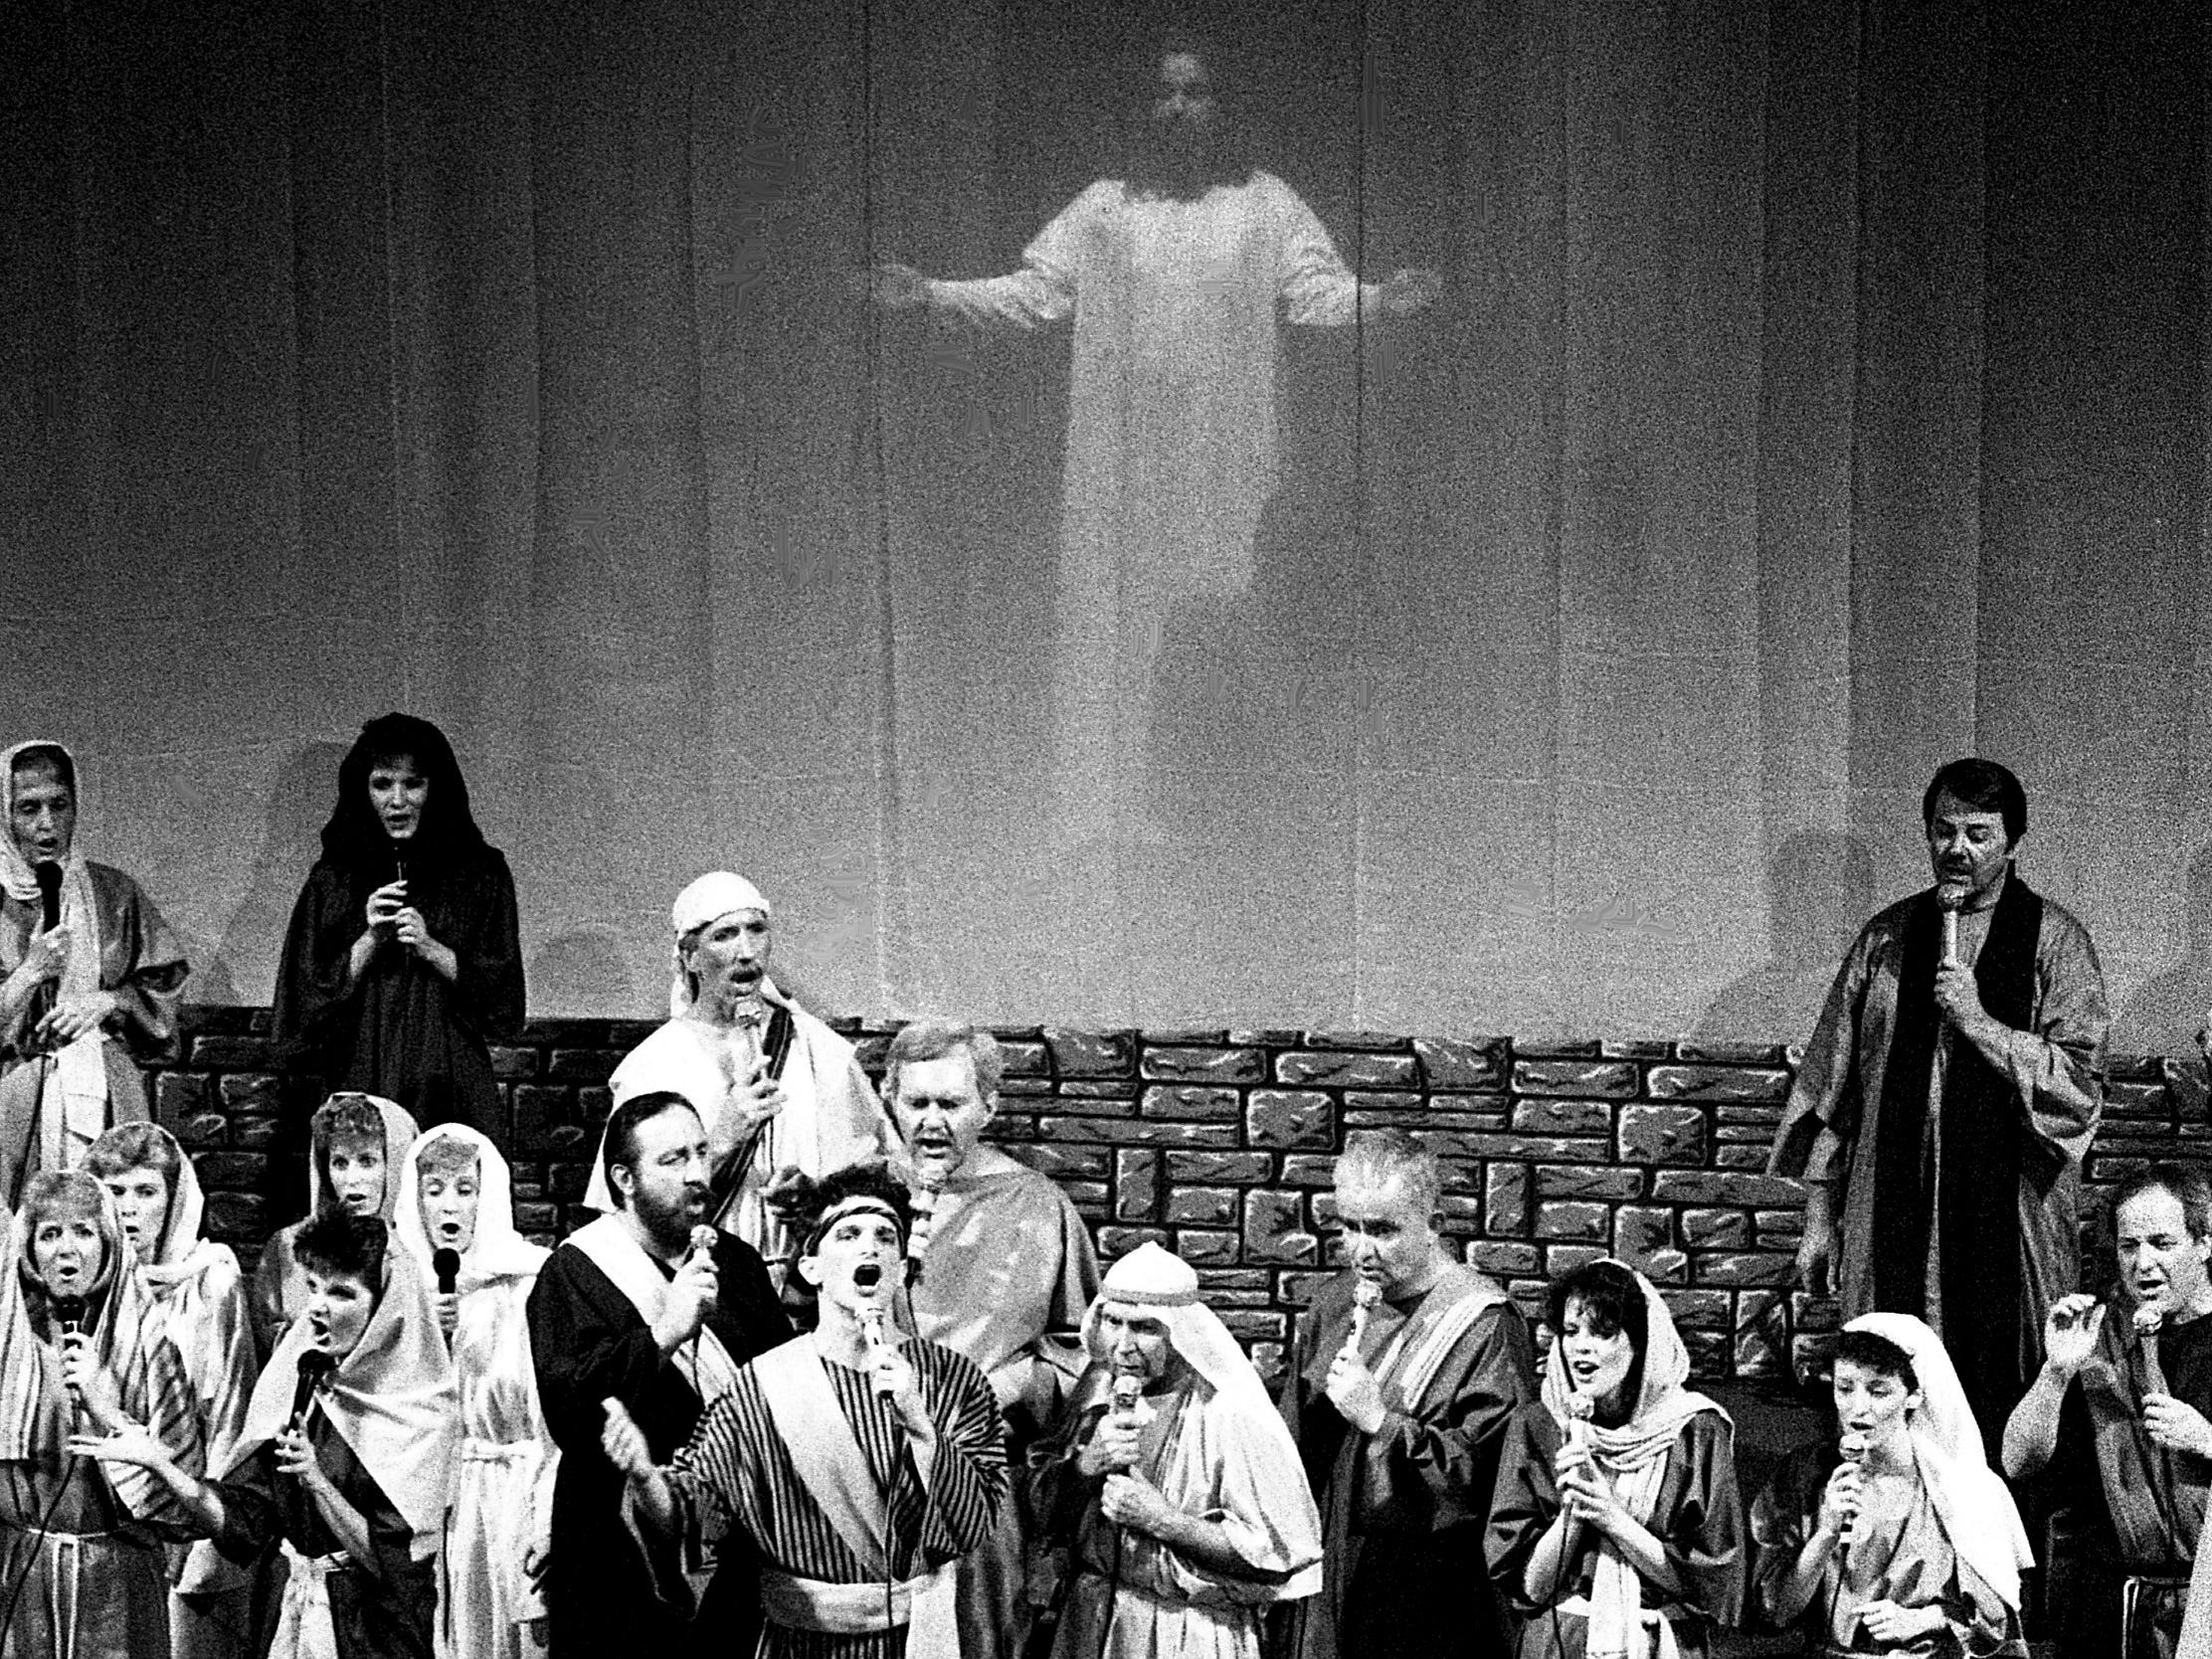 Jesus, portrayed by Bill Hart, rises above the faithful during the annual Passion play presented by the Grace Church of the Nazarene on Pennington Bend Road on March 24, 1989. It is one of the more noted observances of Easter in the Nashville Area.